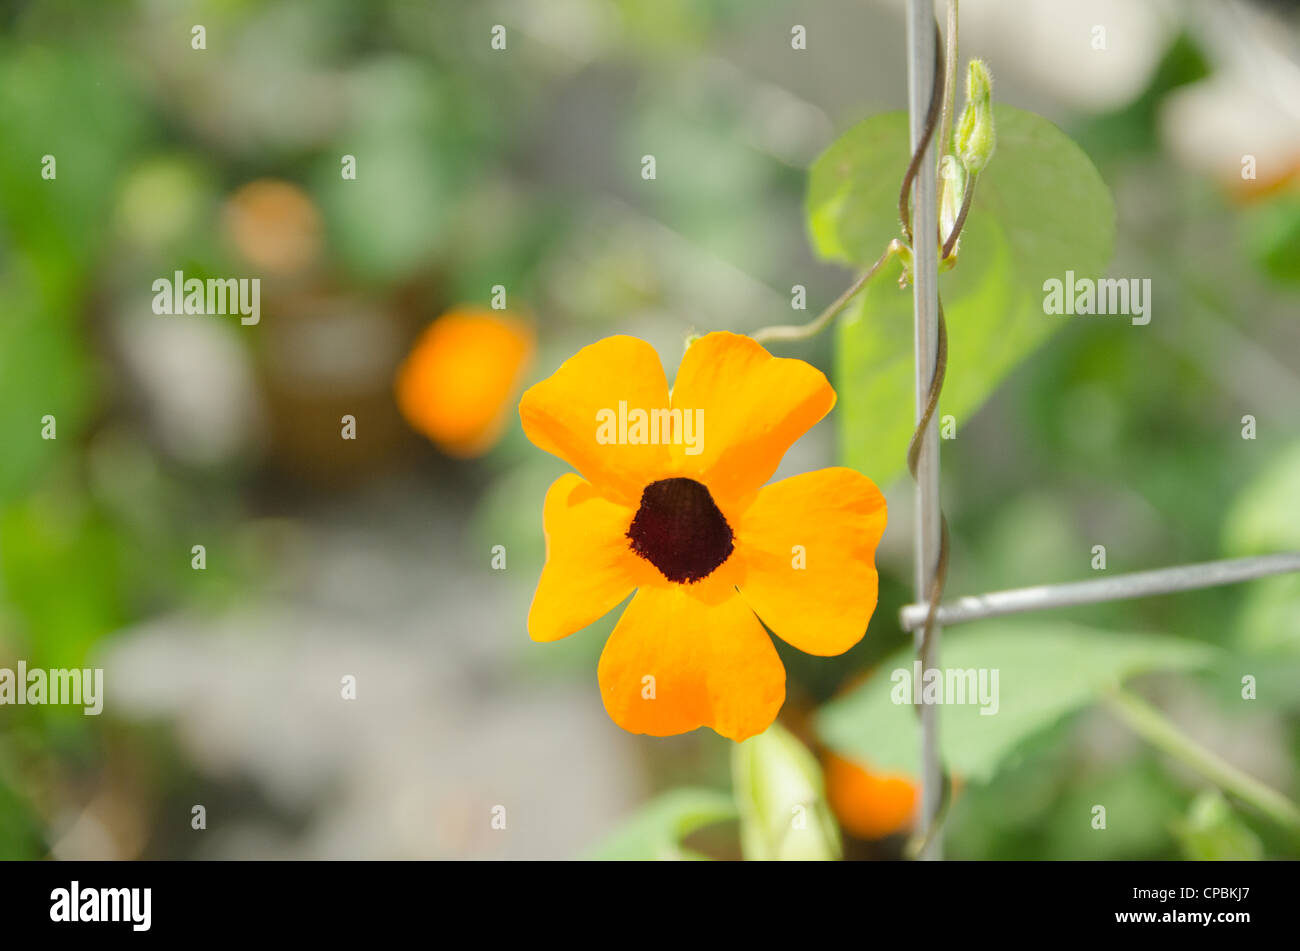 Orange Flower With Brown Center Growing In Greenhouse With Green